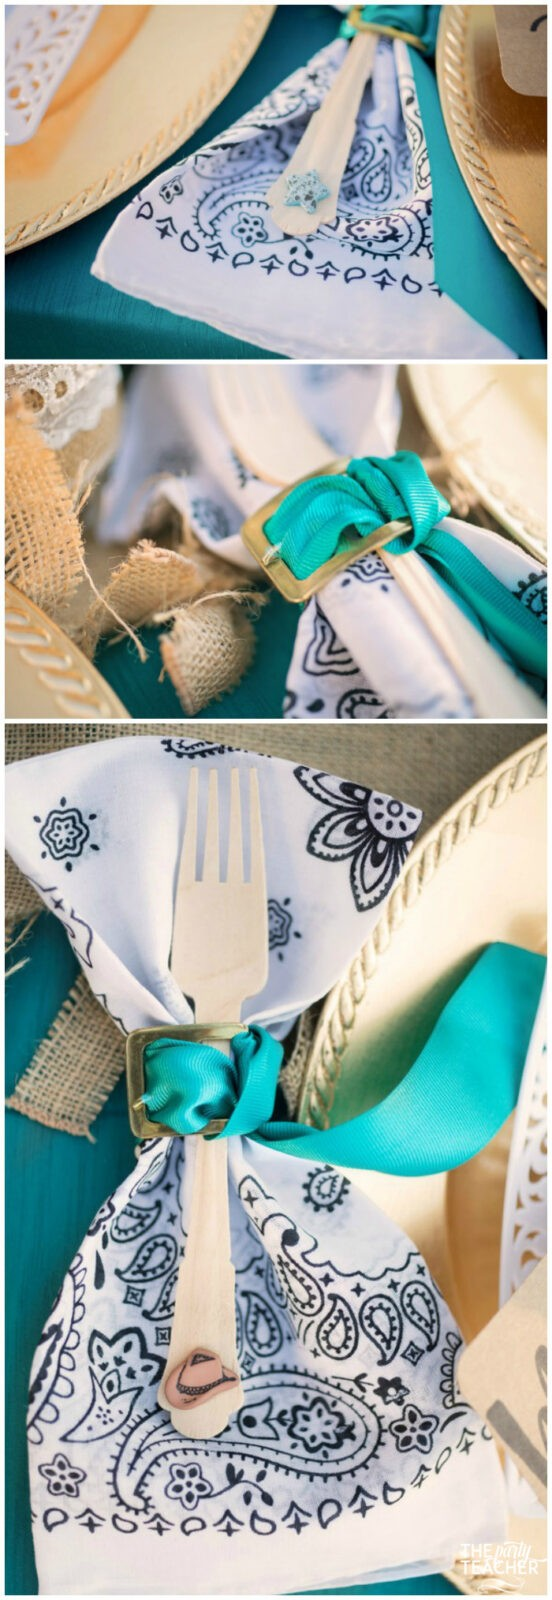 Horseback Riding Party by The Party Teacher - fork napkin ring